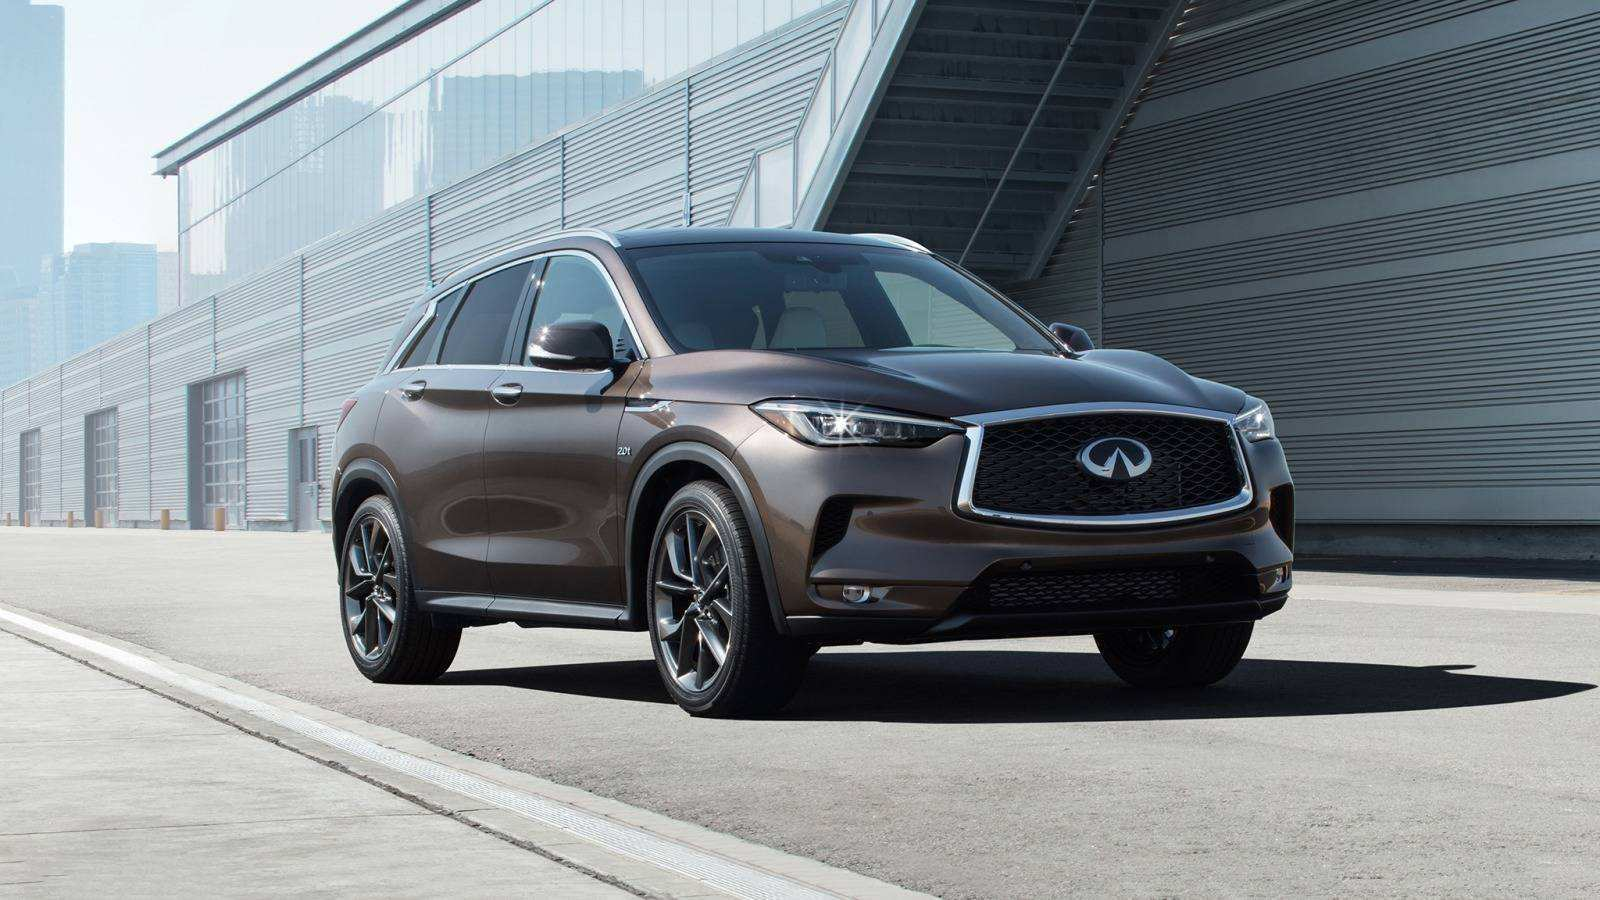 54 Best Review 2019 Infiniti Truck Redesign Model by 2019 Infiniti Truck Redesign